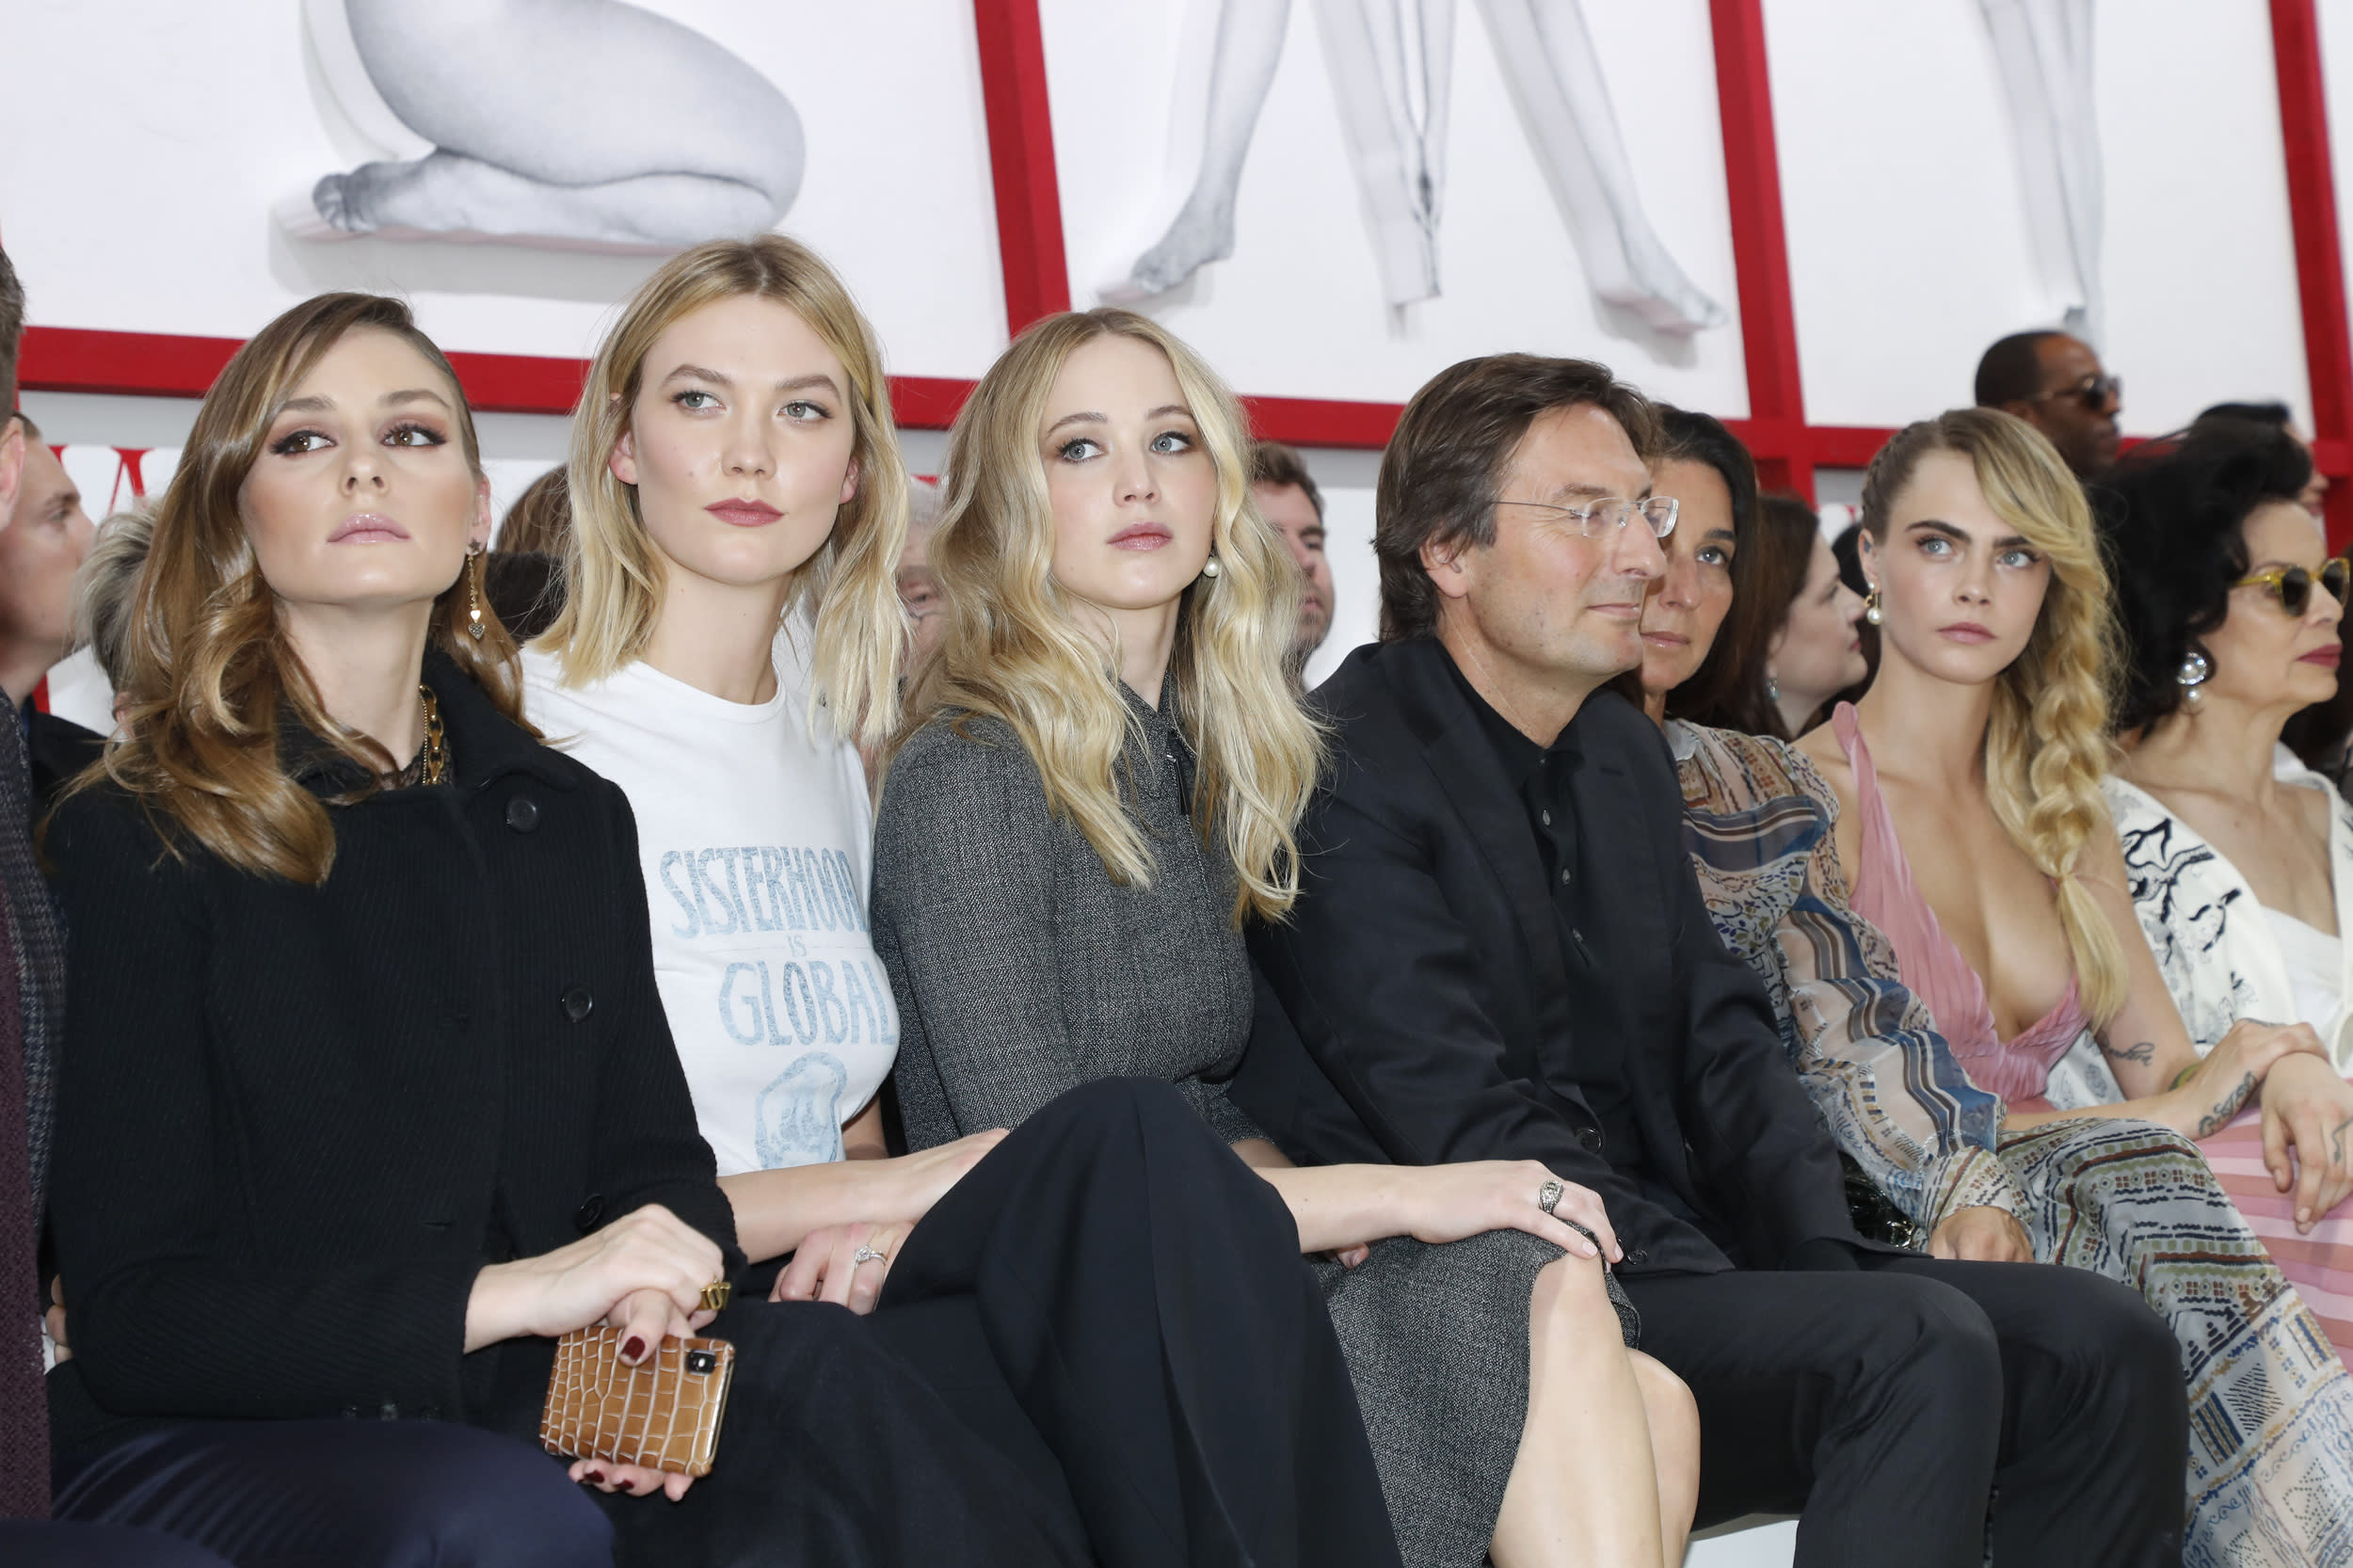 PARIS, FRANCE - FEBRUARY 26: (L-R) Olivia Palermo, Karlie Kloss, Jennifer Lawrence, CEO of Dior Pietro Beccari, his wife Elisabetta Beccari, Cara Delevingne and Bianca Jagger attend the Christian Dior show as part of the Paris Fashion Week Womenswear Fall/Winter 2019/2020 on February 26, 2019 in Paris, France. (Photo by Bertrand Rindoff Petroff/Getty Images)